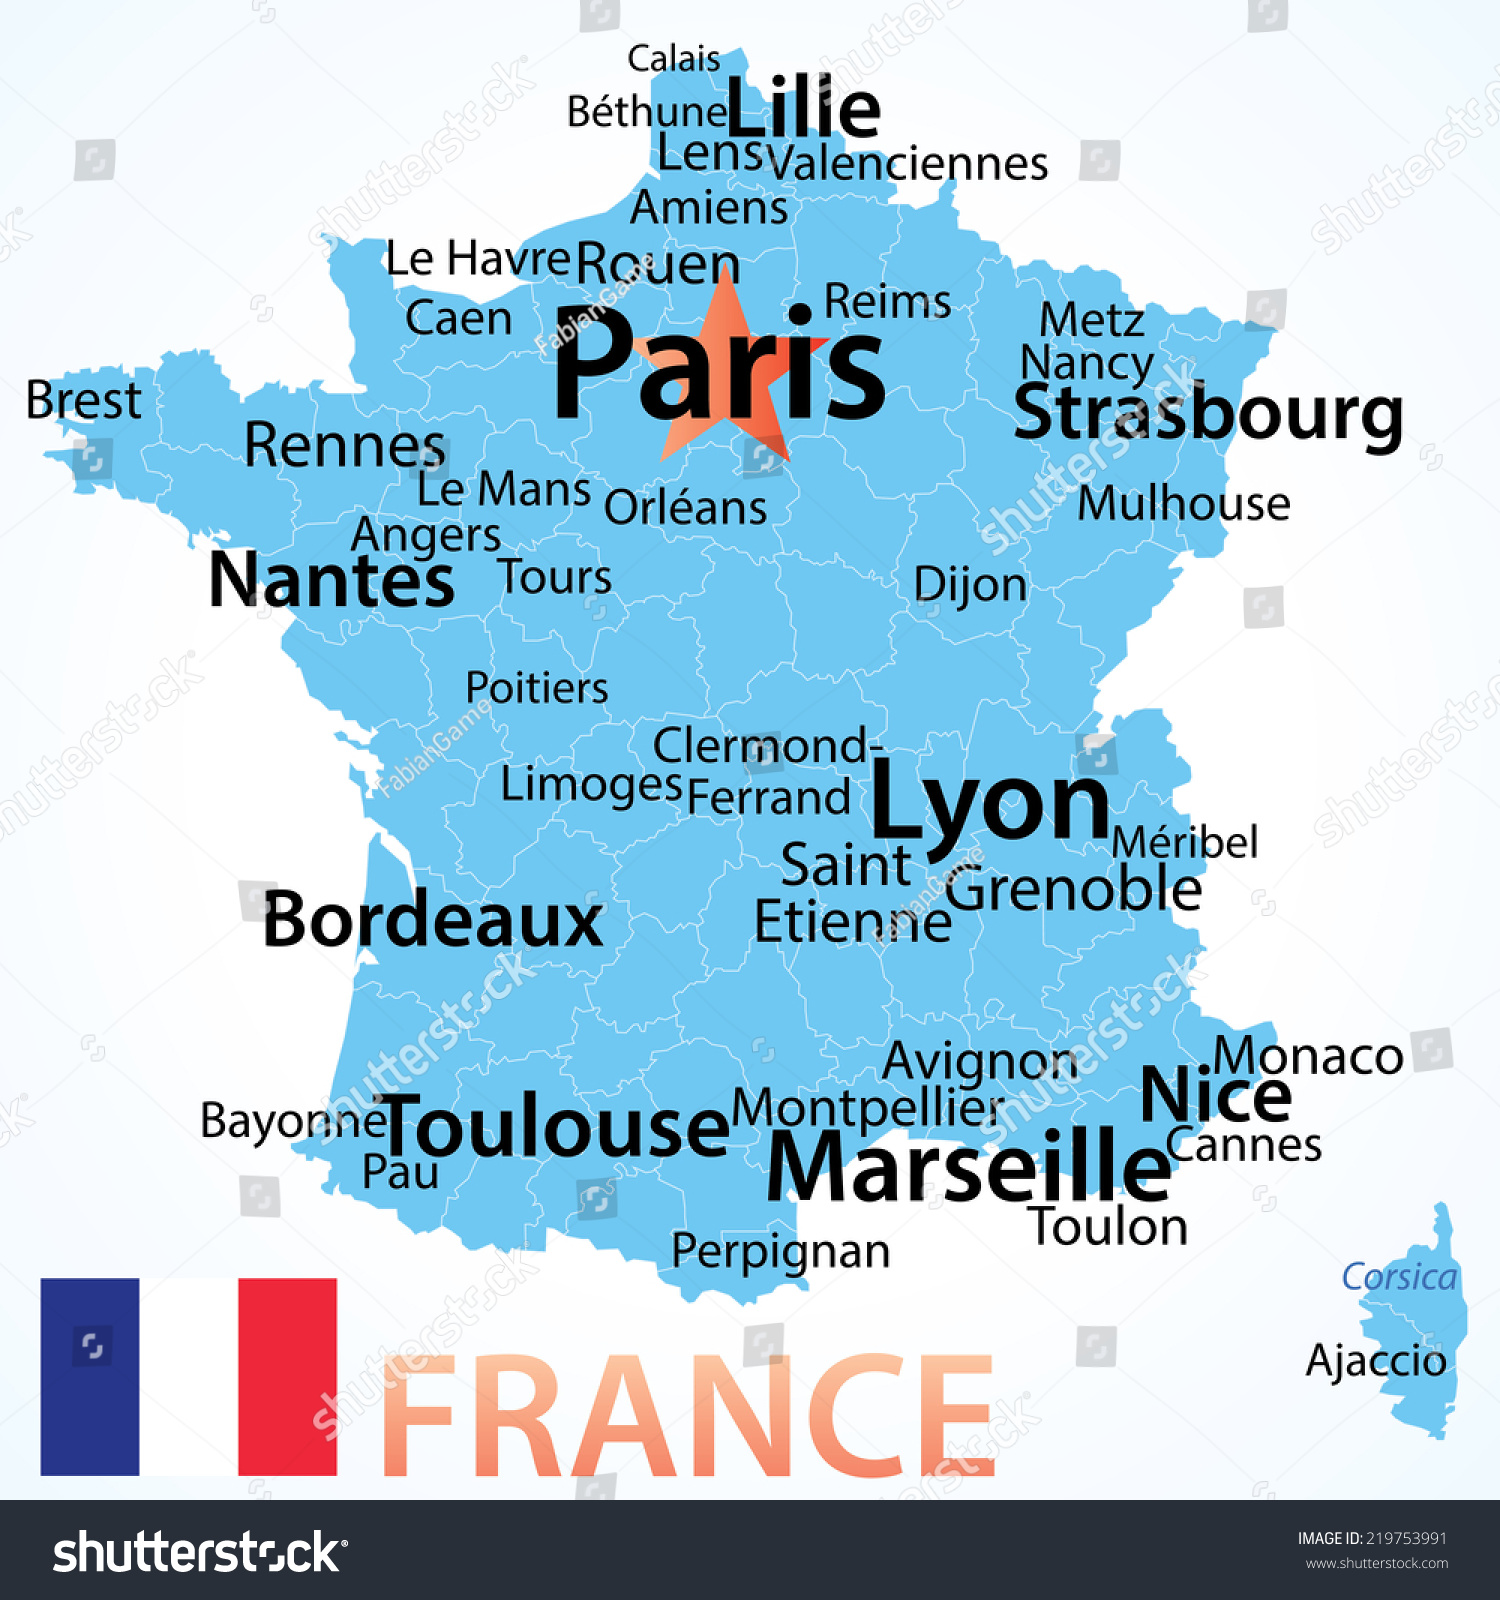 France vector map largest cities carefully vector de stock219753991 france vector map with largest cities carefully scaled text by city population geographically gumiabroncs